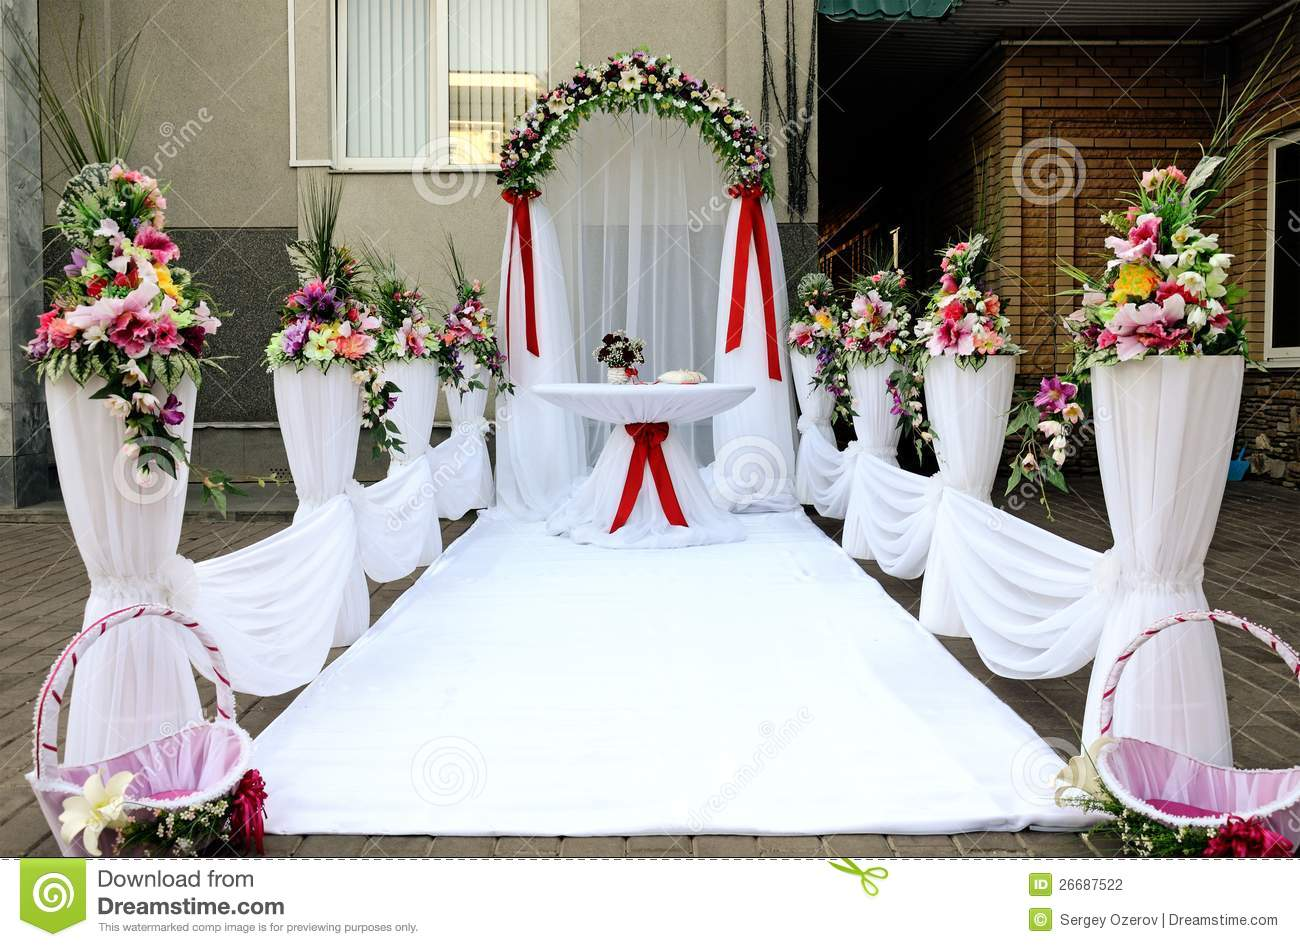 Places For Wedding Ceremony: Place For Wedding Ceremony. Stock Photography